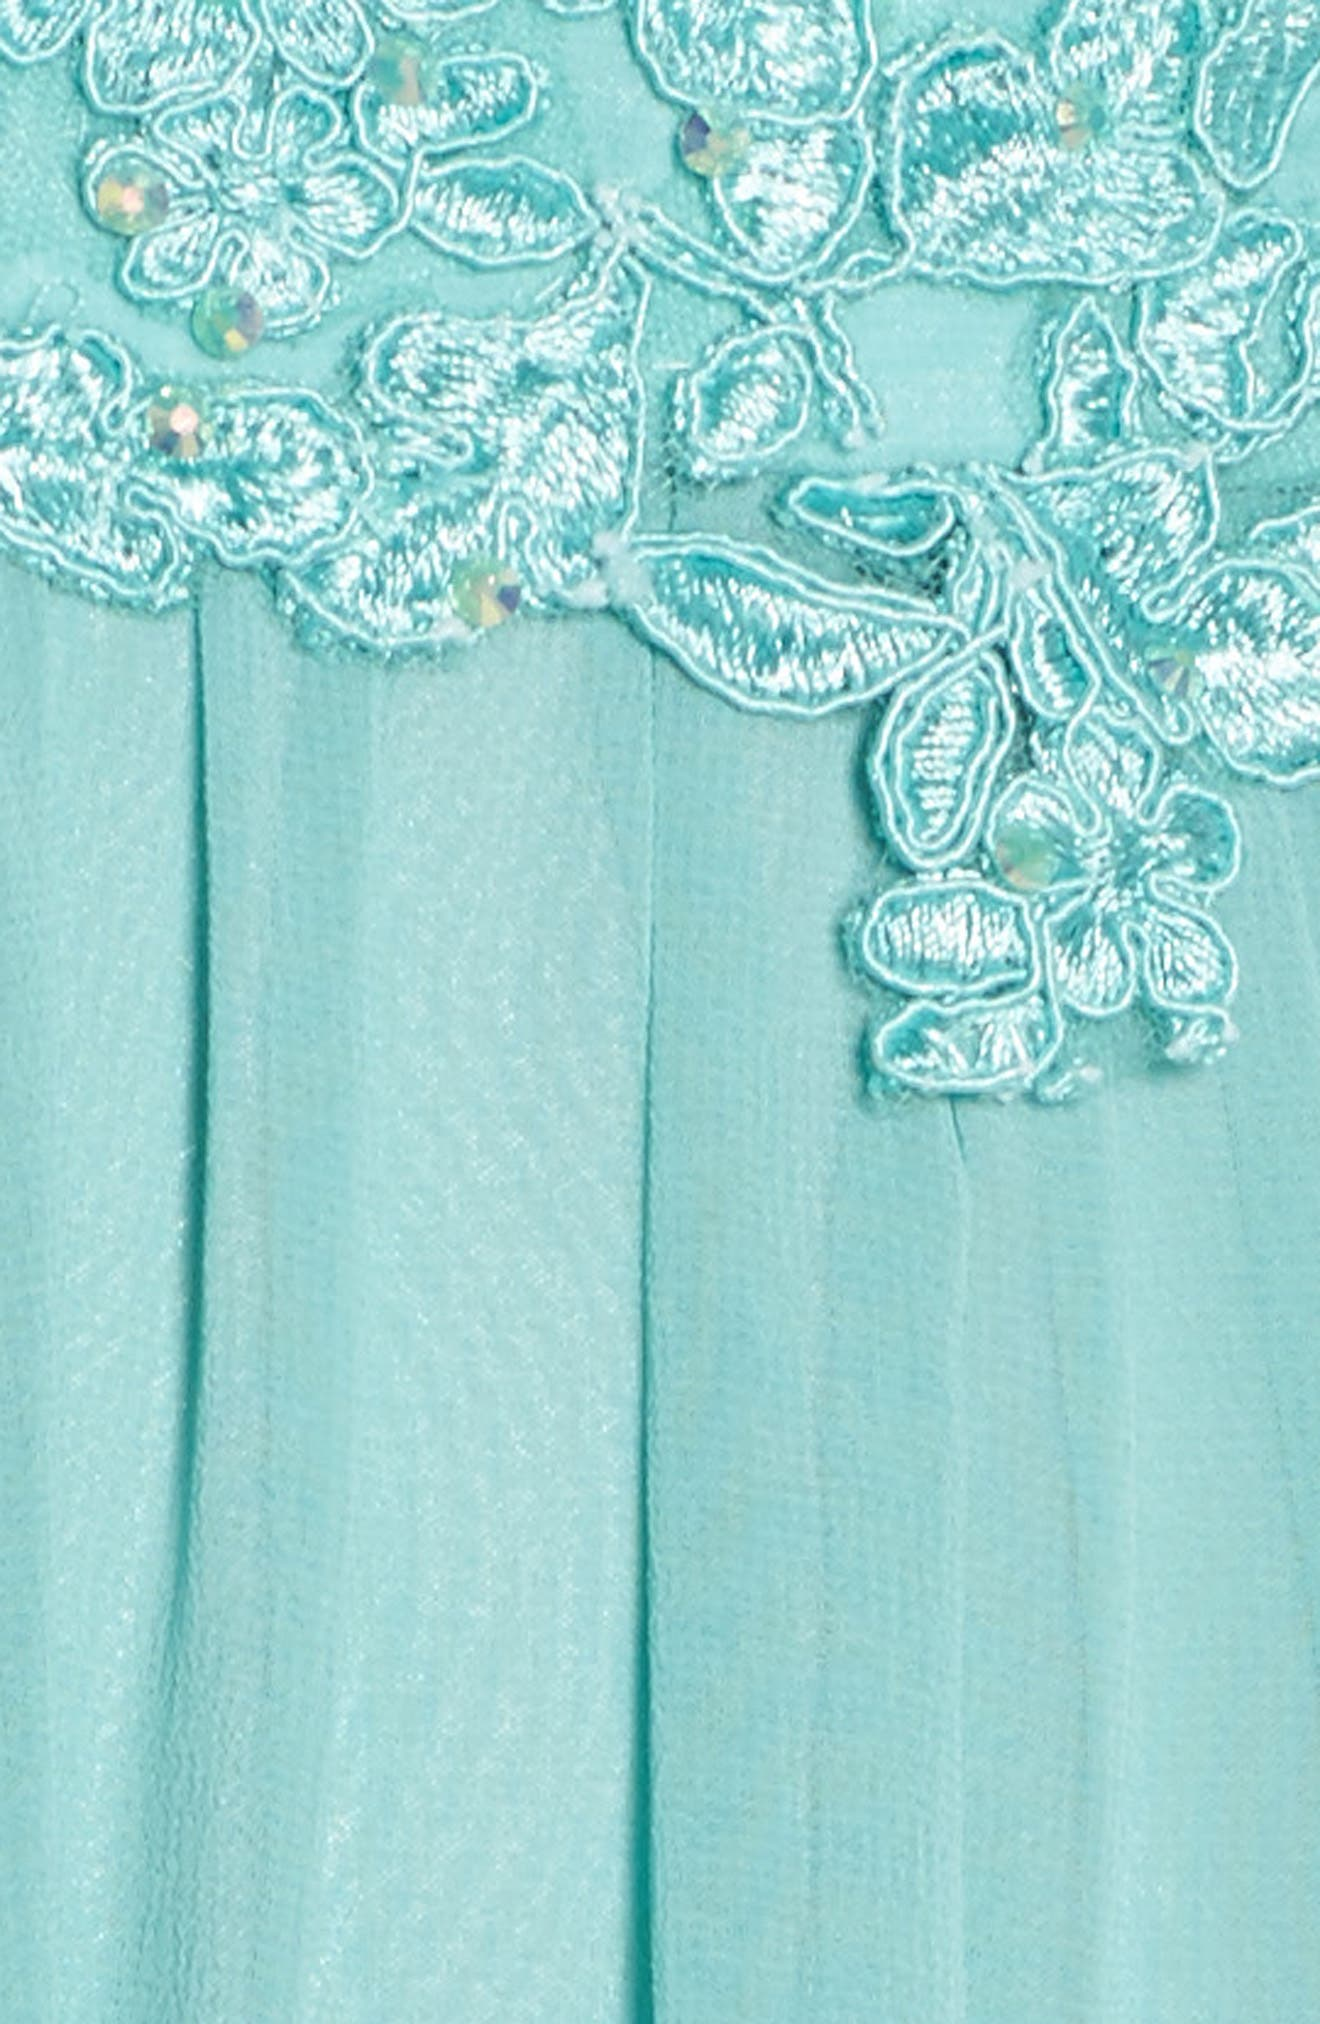 Embellished A-Line Chiffon Gown,                             Alternate thumbnail 5, color,                             330